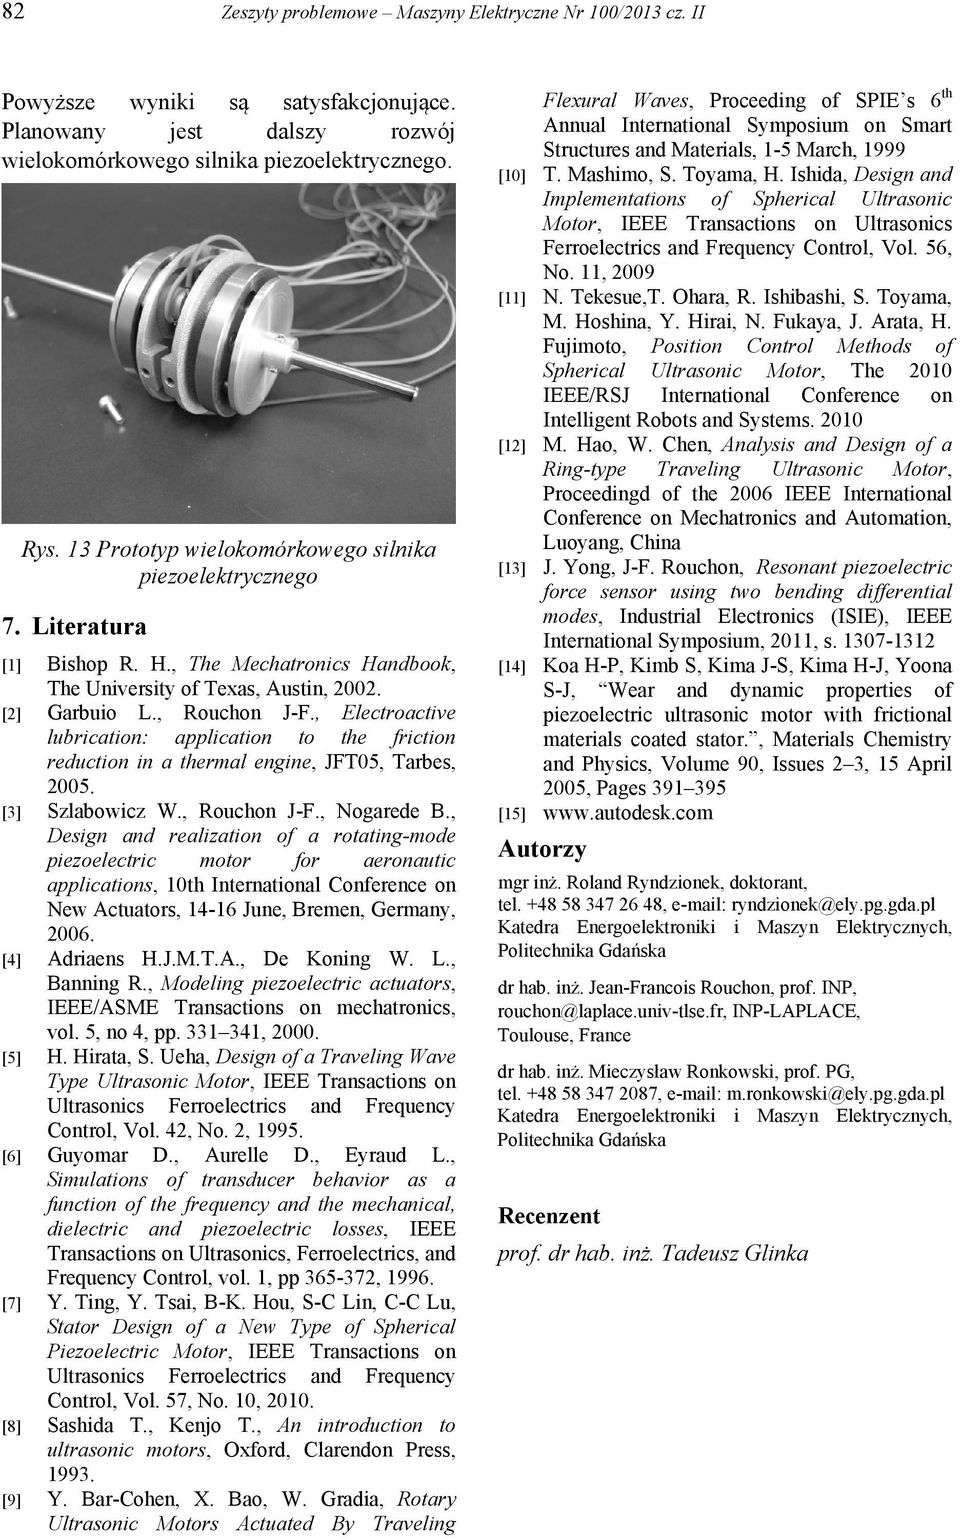 , Electroactive lubrication: application to the friction reduction in a thermal engine, JFT05, Tarbes, 2005. [3] Szlabowicz W., Rouchon J-F., Nogarede B.